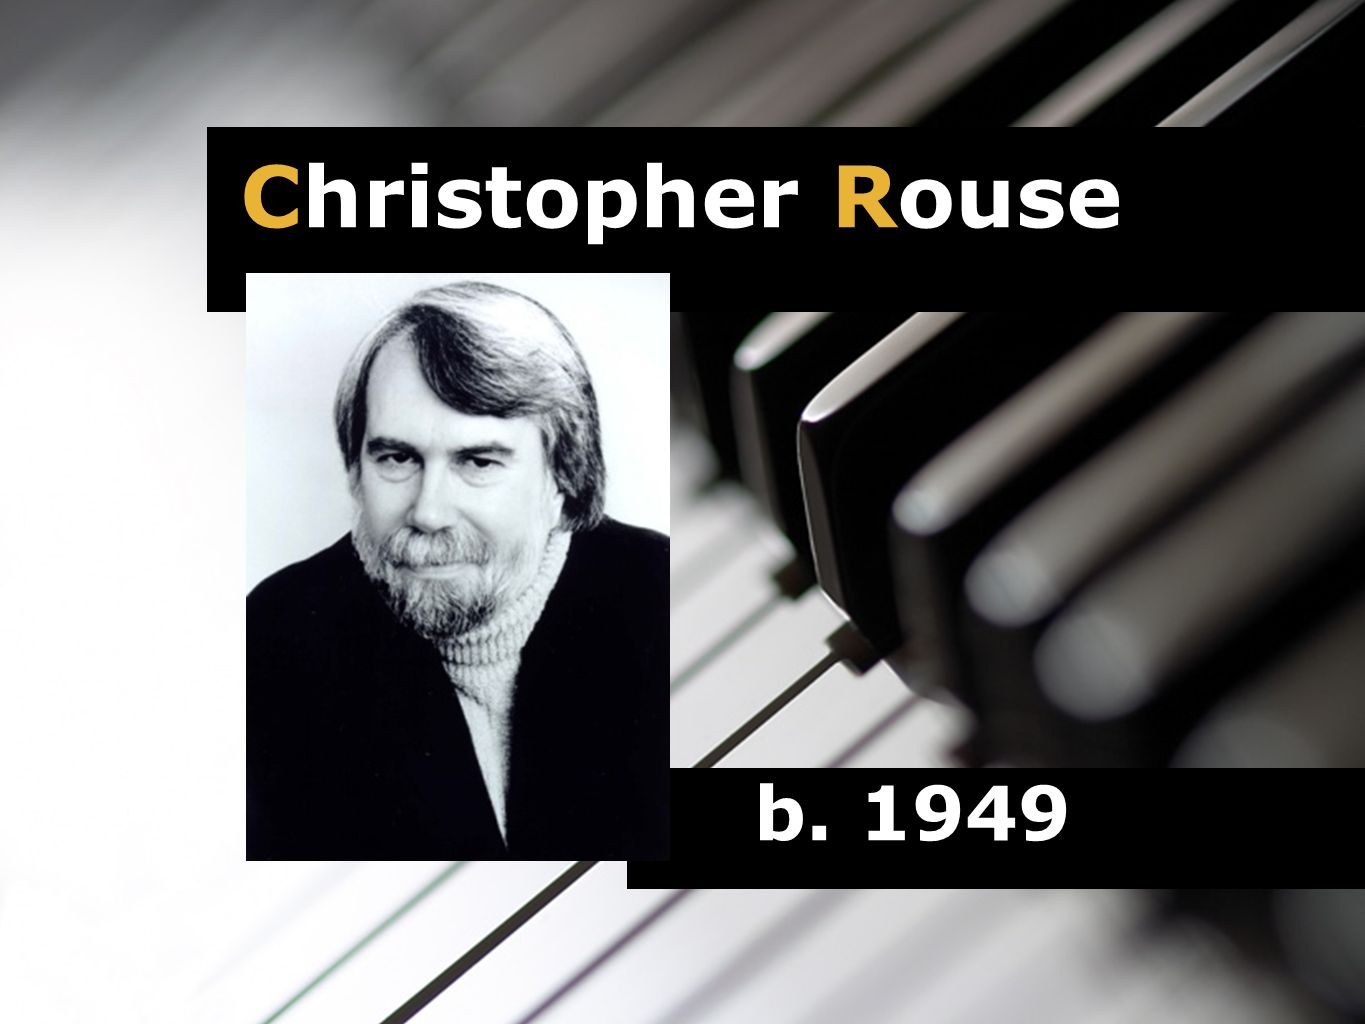 b. 1949 Christopher Rouse